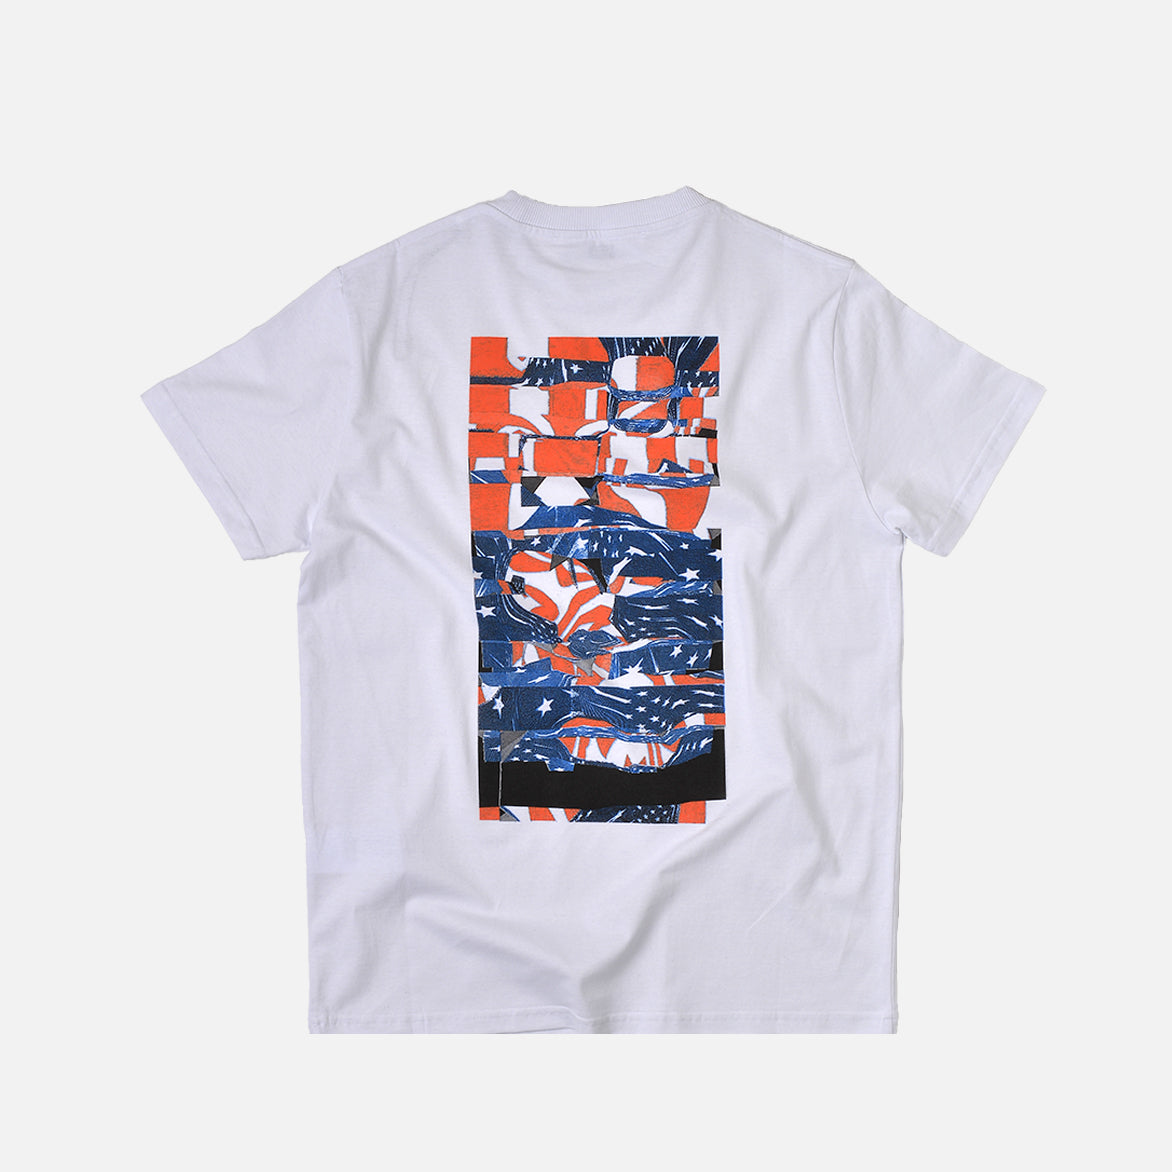 COLLAGE S/S TEE - WHITE